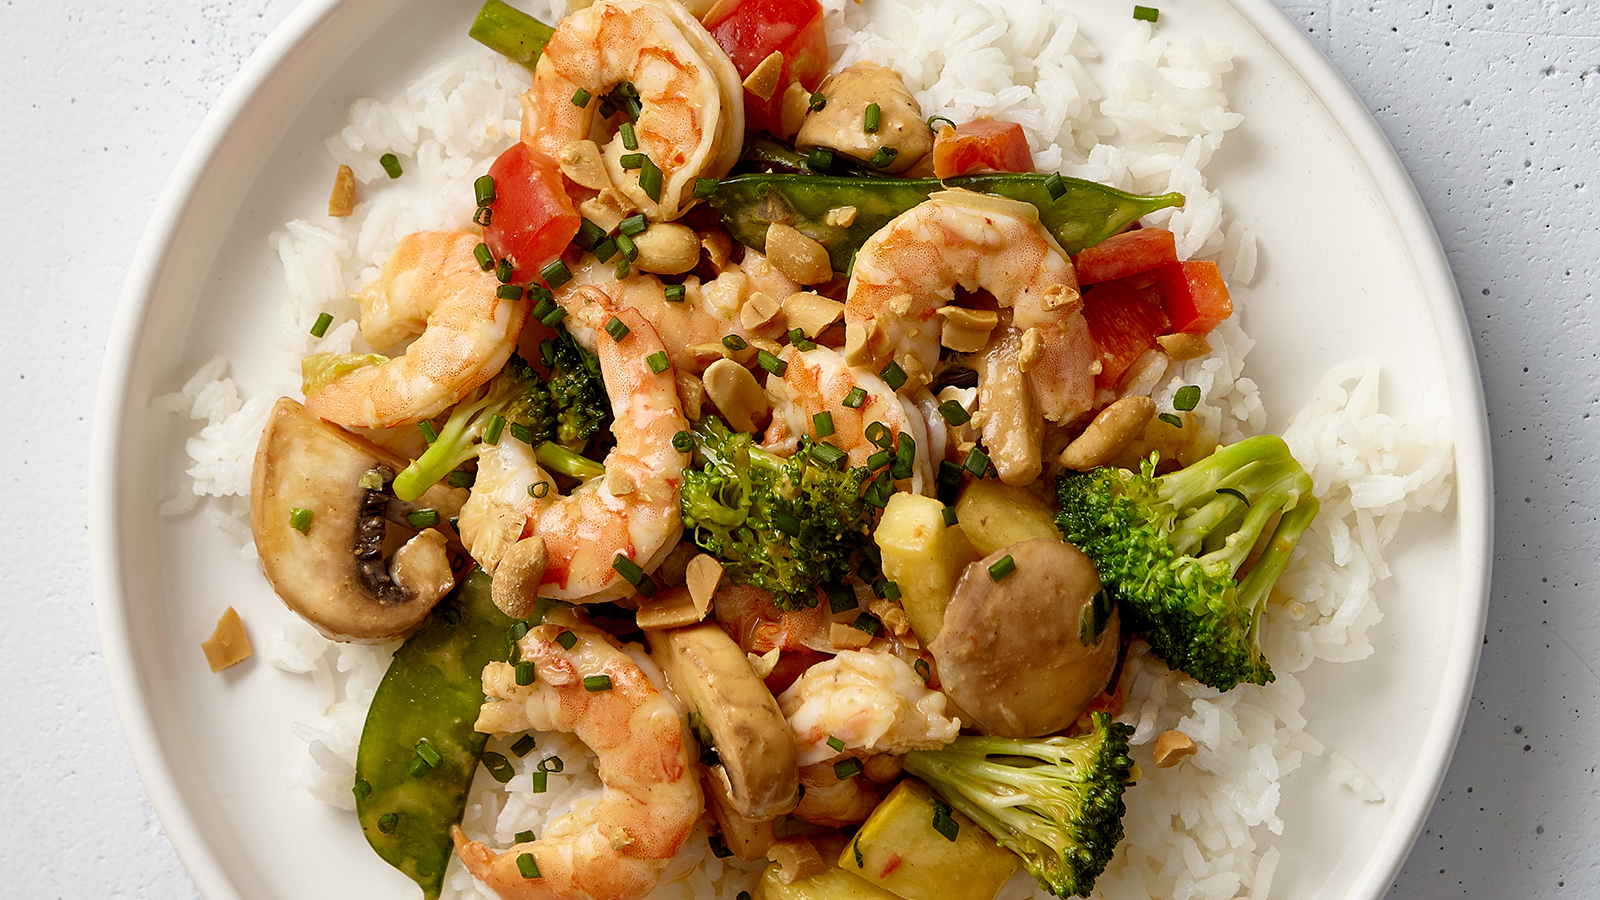 Lemongrass Basil Shrimp Stir Fry